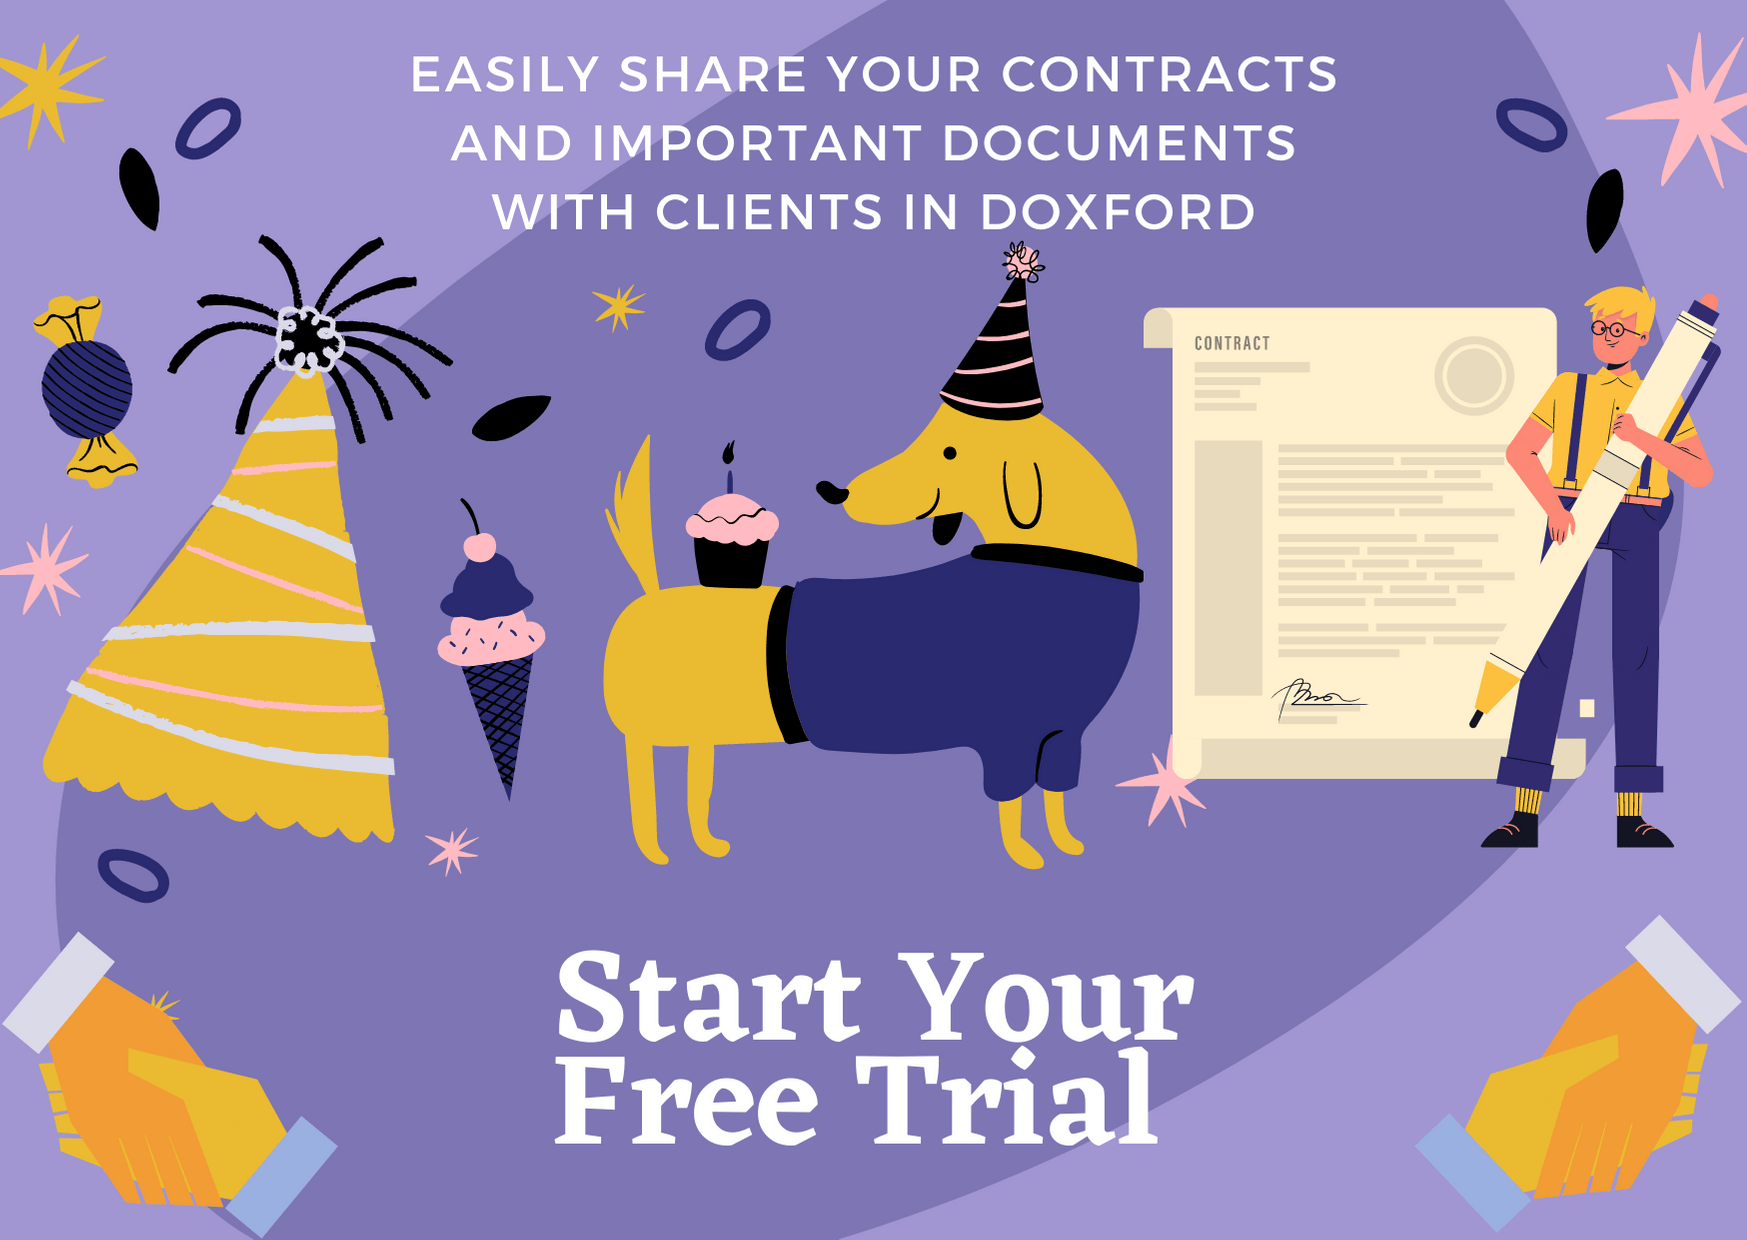 Share contracts and docs with Doxford